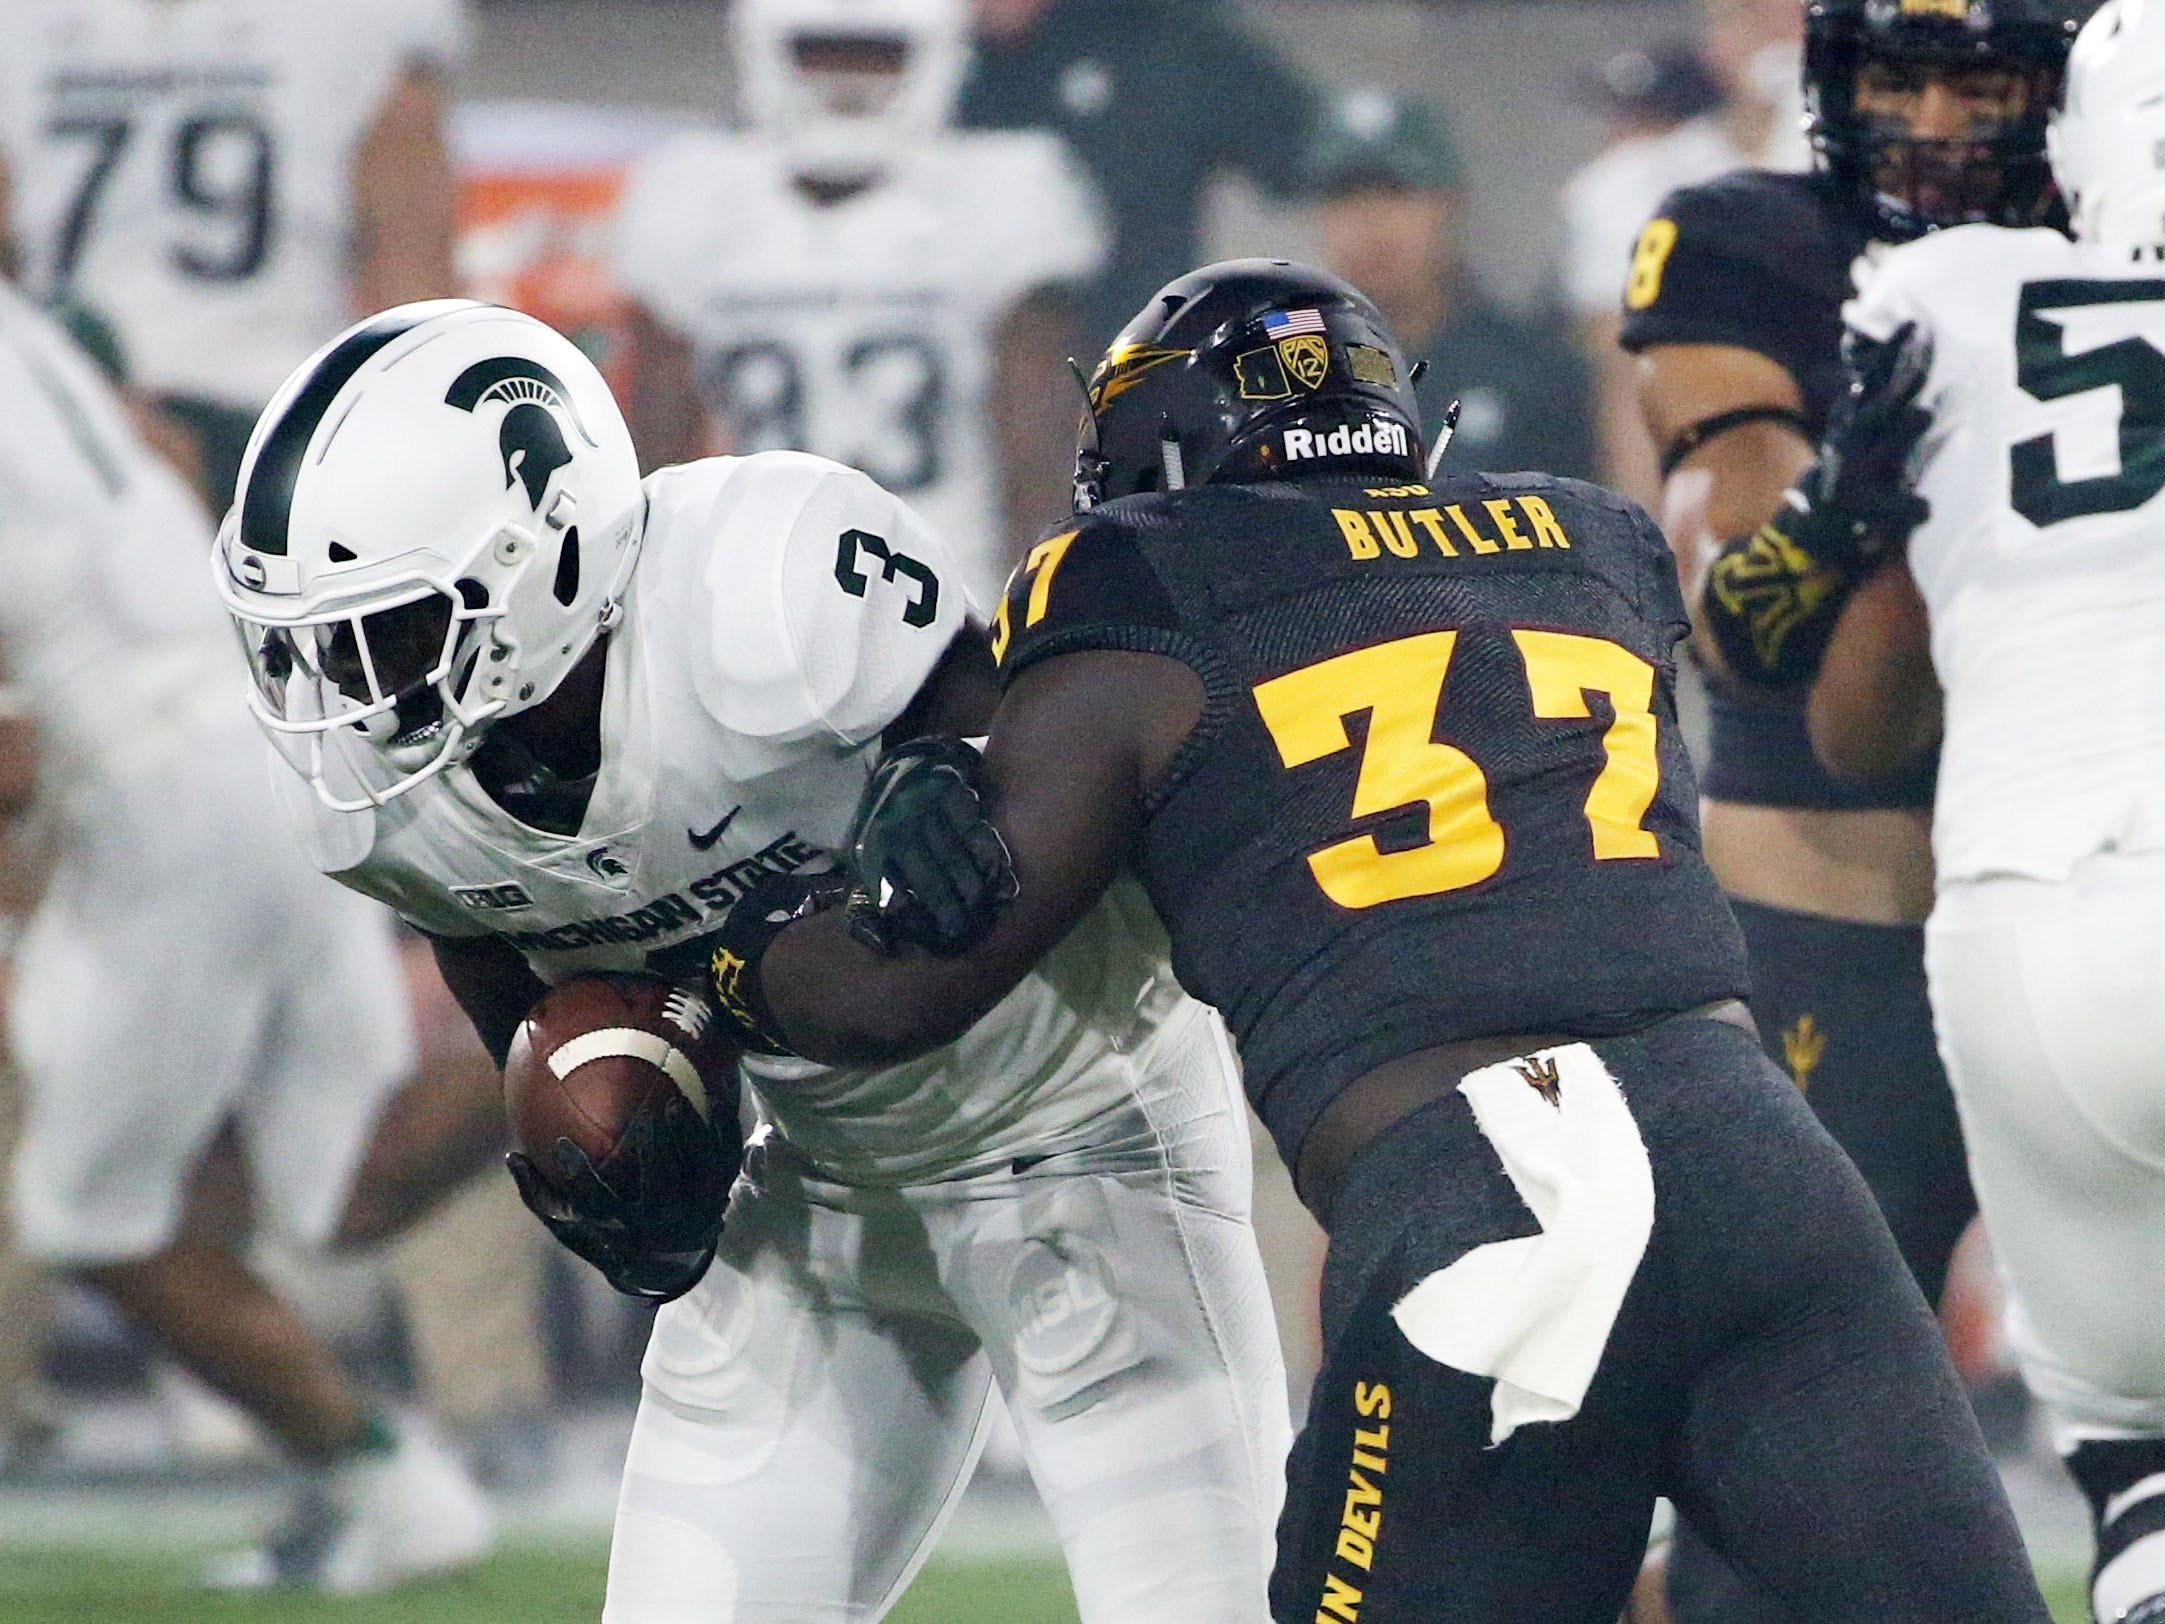 Arizona State linebacker Darien Butler tackles Michigan State running back LJ Scott on Sep. 8, 2018, at Sun Devil Stadium.